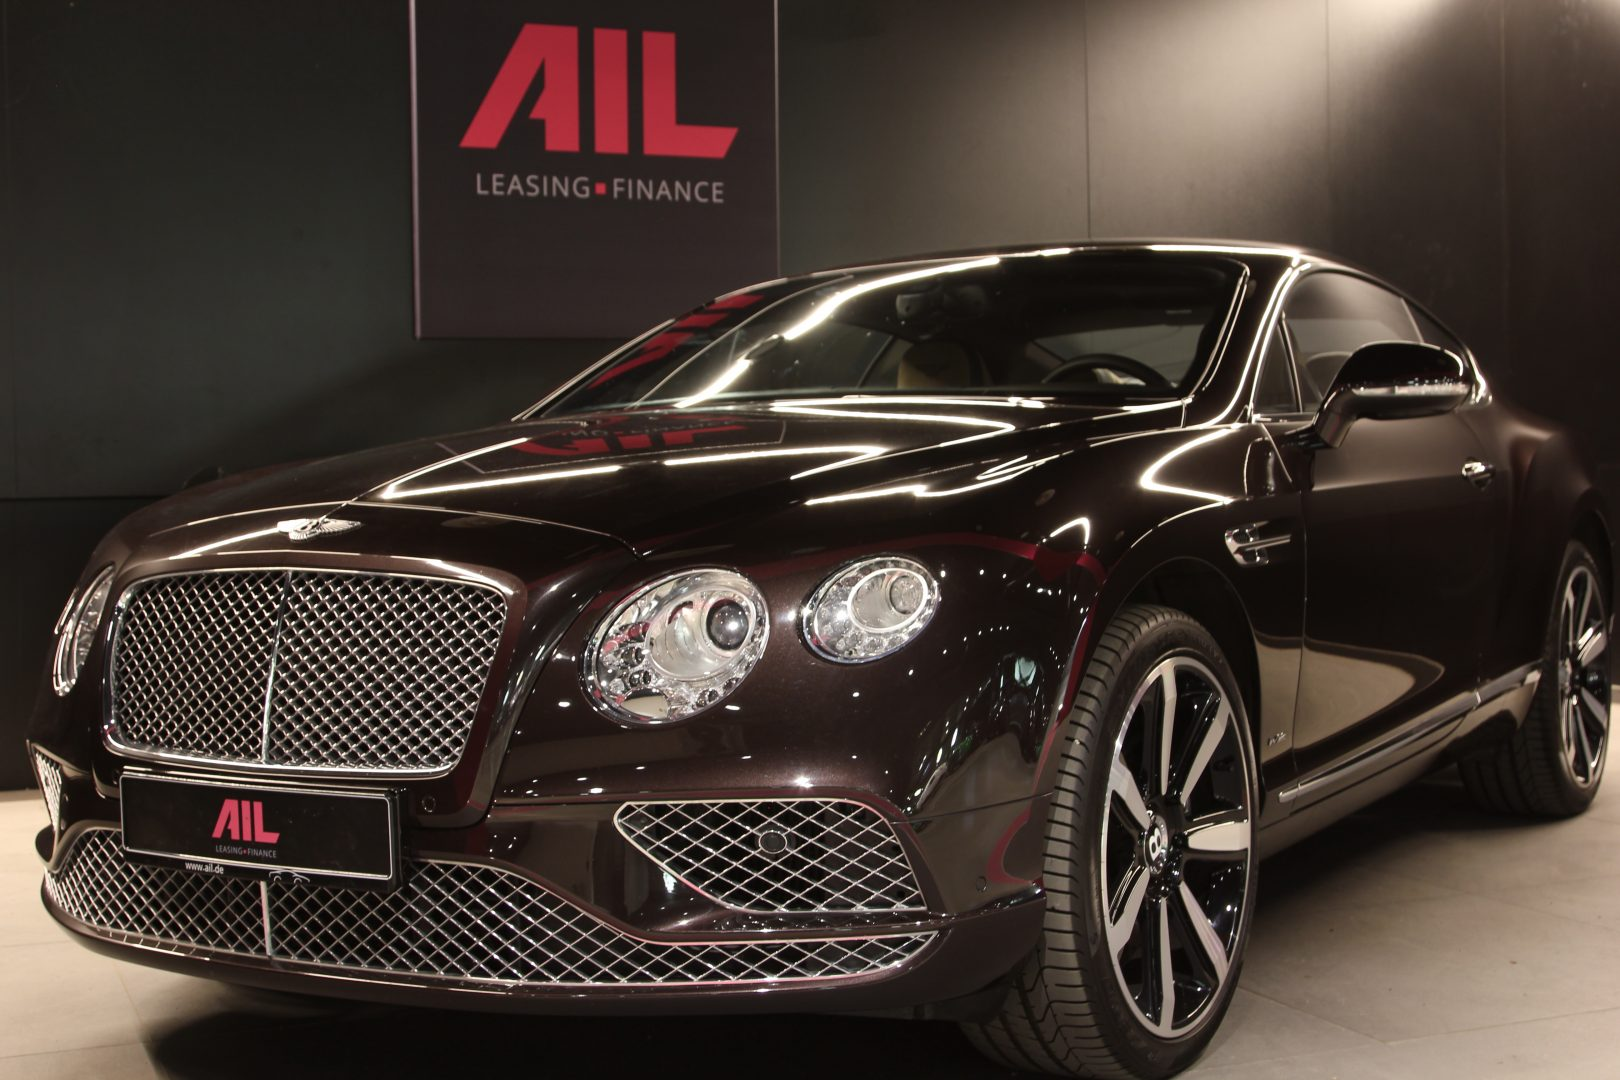 AIL Bentley Continental GT W 12 7